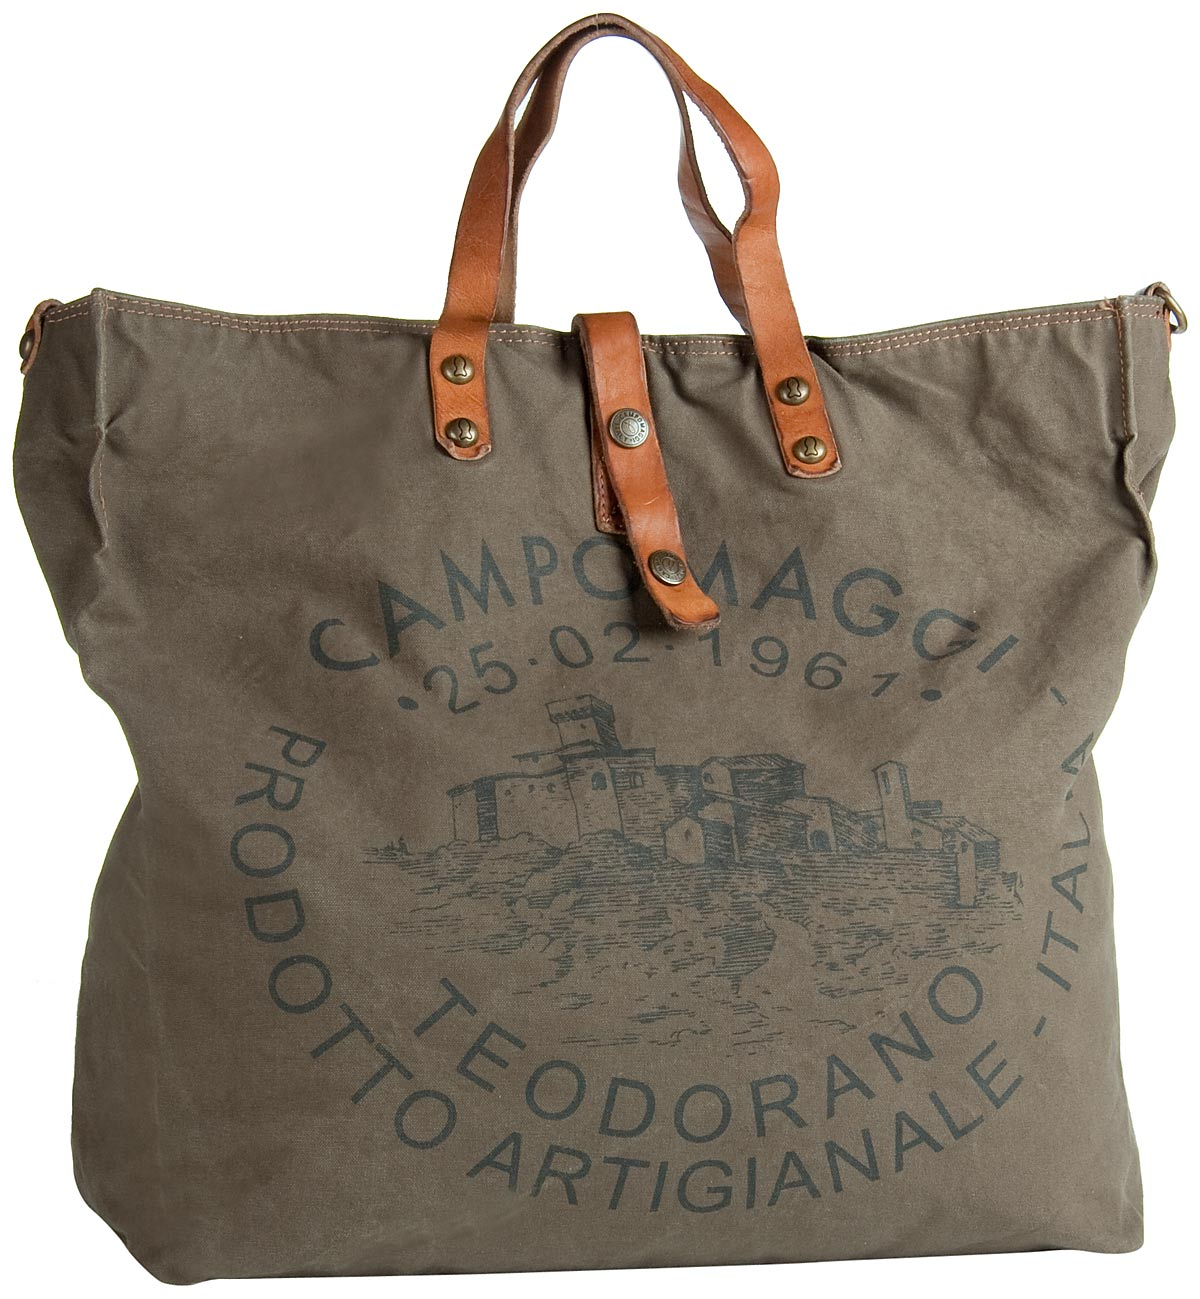 Handtasche Lambro Canvas Bag Militare/Naturale